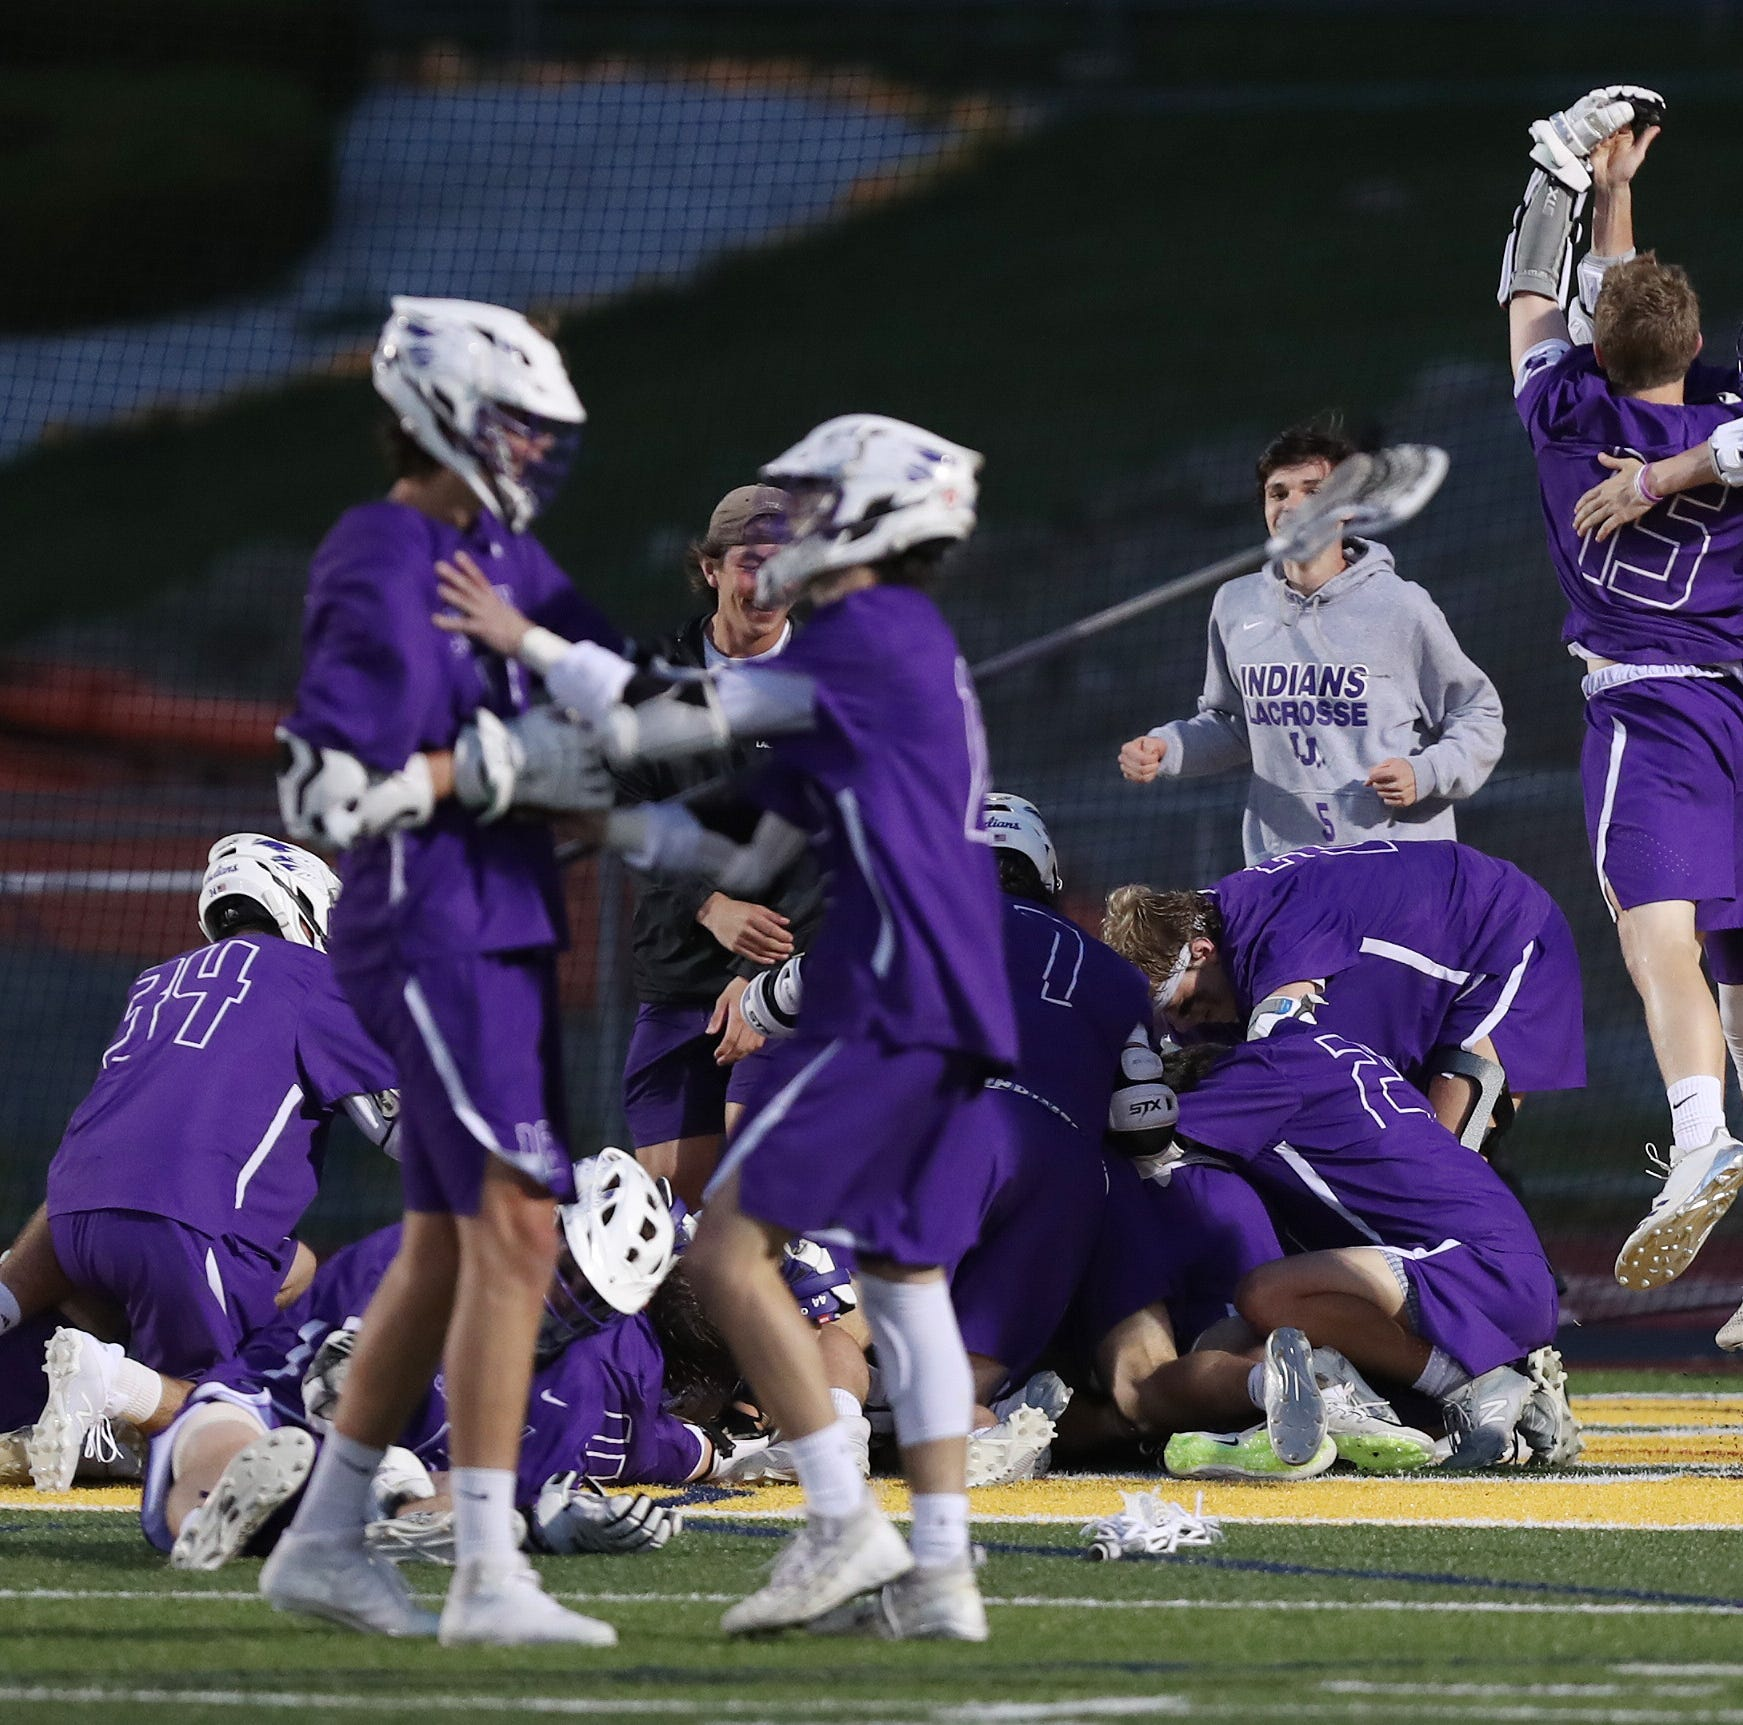 Boys lacrosse: John Jay again defeats Yorktown in title game by the smallest of margins